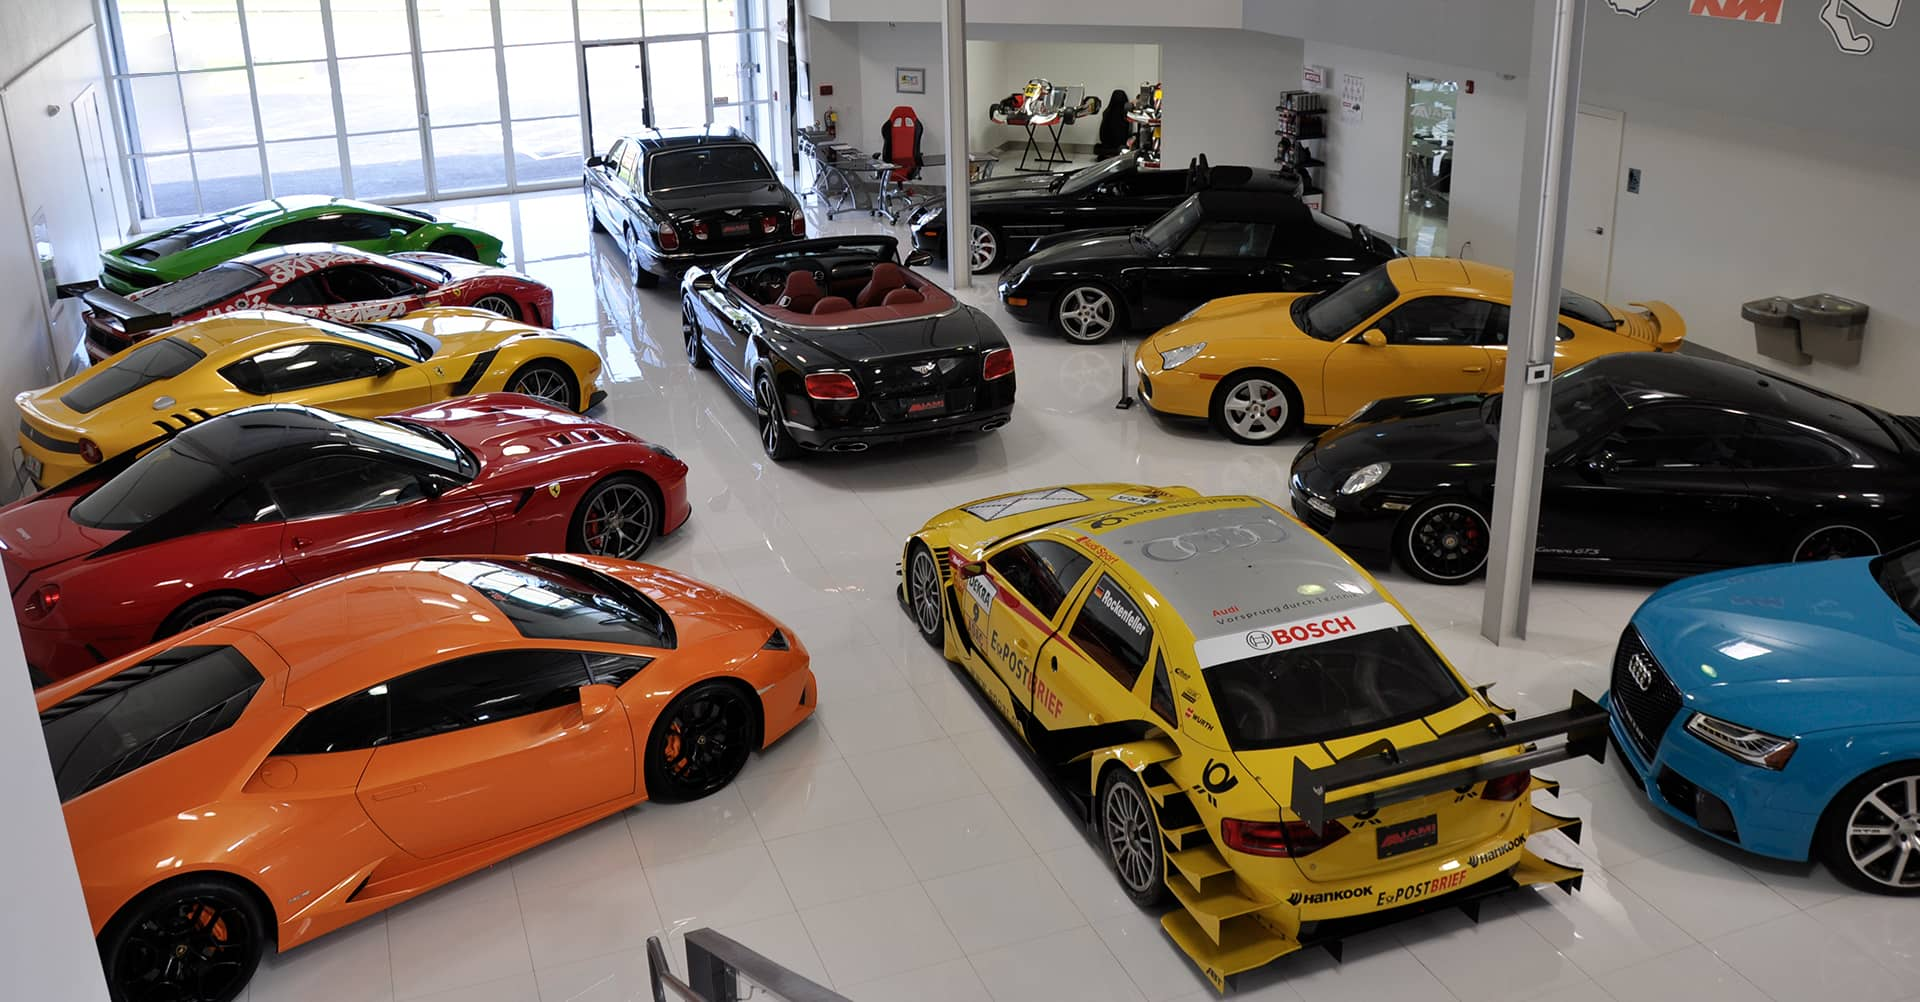 Cars Sale Dealer Best Of Miami Motorcar Used Exotic Cars for Sale Miami Beach Fl Dealer